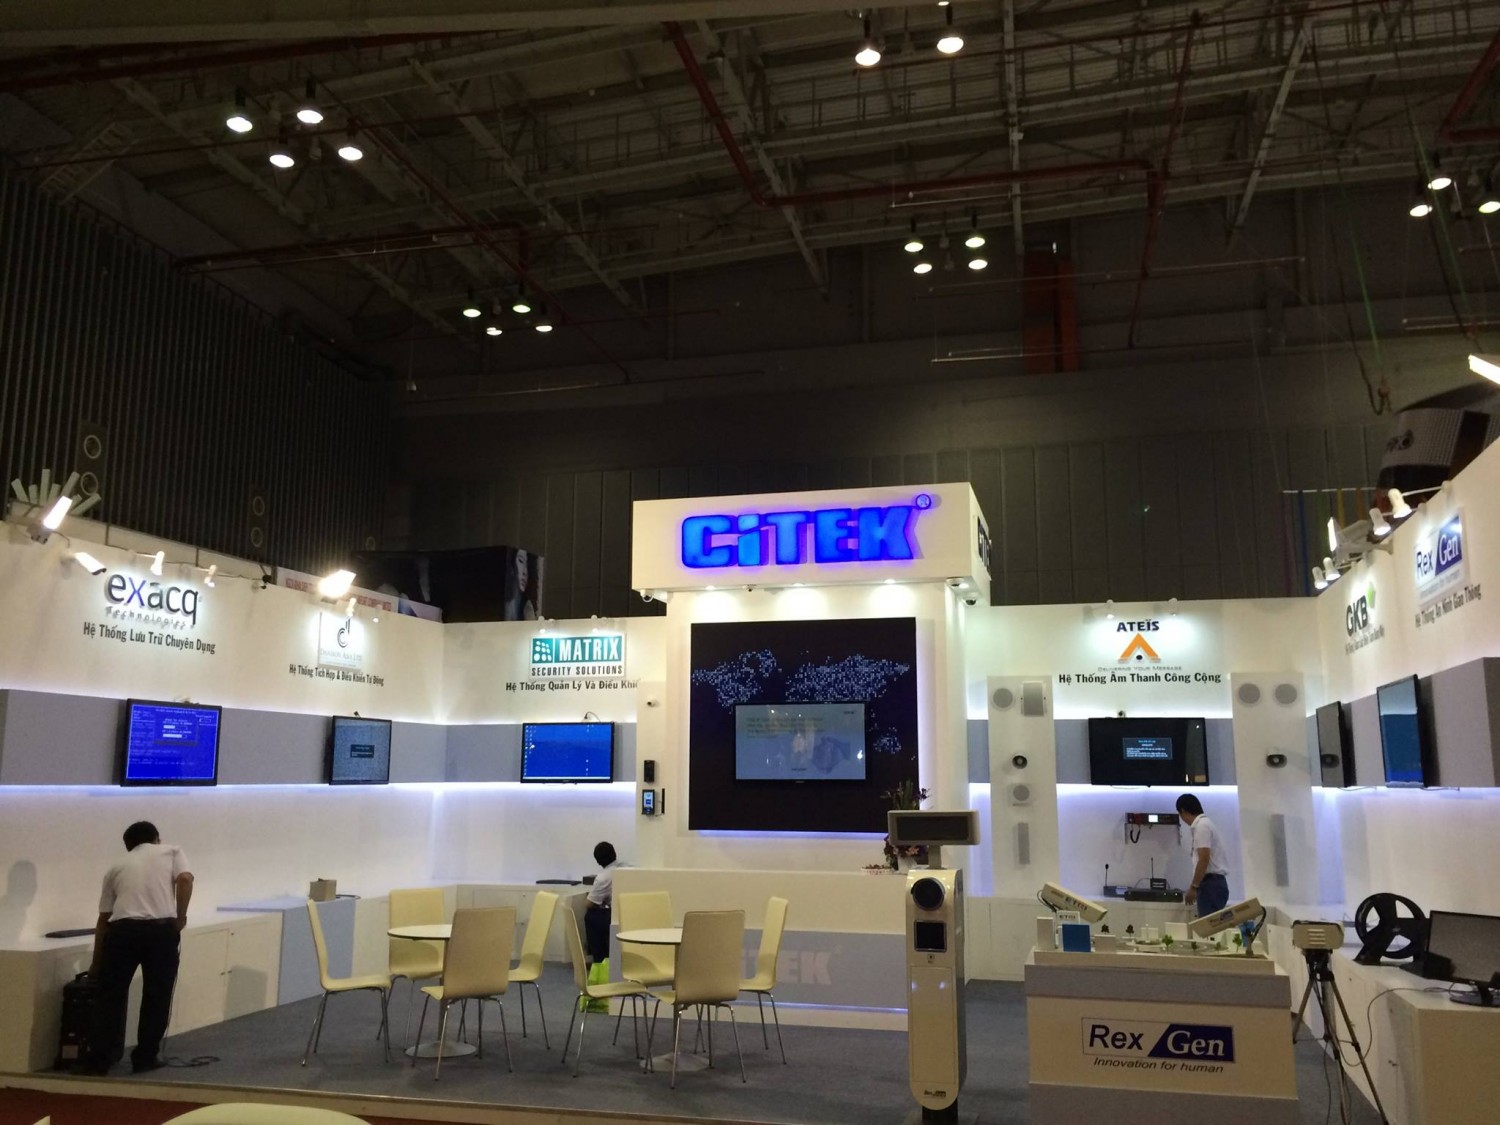 Citek Participated In The Second Vietbuild Exhibition In 08/2014